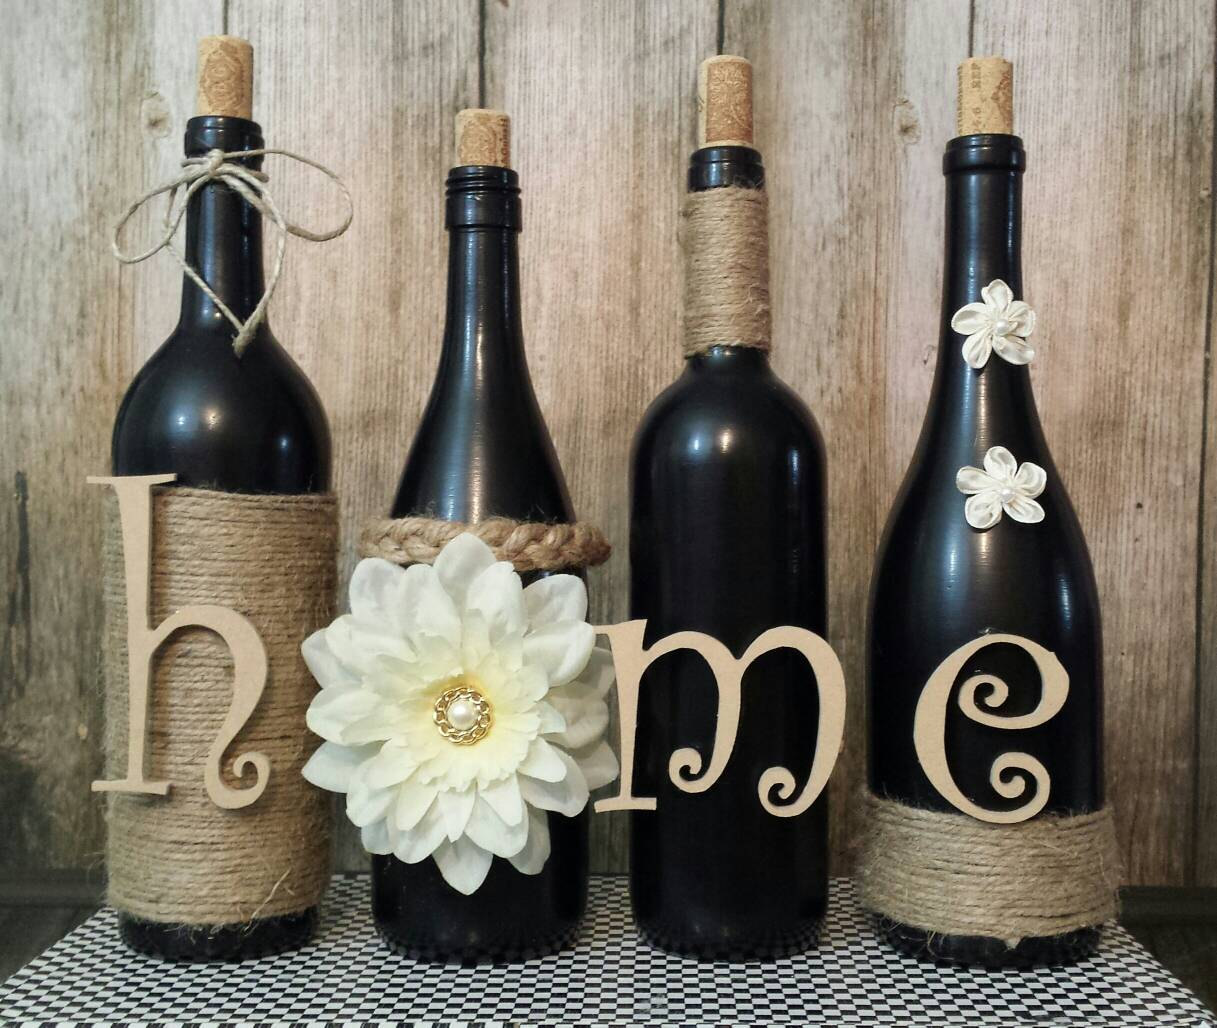 Flowers & Twine 'home' Wine Bottles